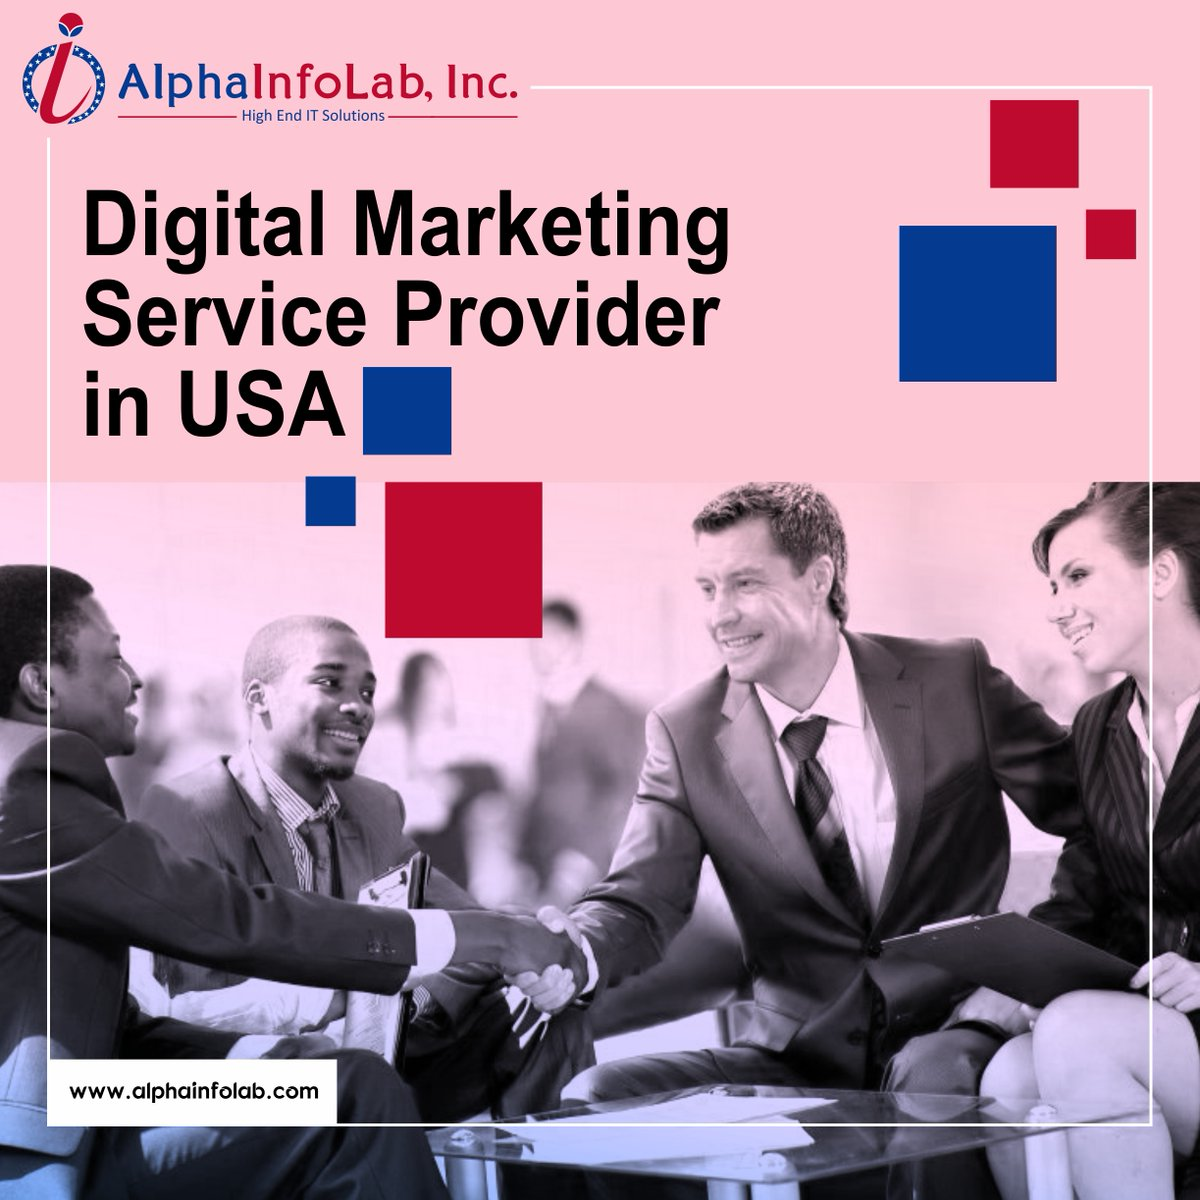 We provide digital marketing ideas to generate positive leads will make you incredibly useful to any commercial organisation. Read More : https://www.alphainfolab.com/services #Digitalmarketing #SEO #marketing #onlinemarketing #marketingdigital #contentmarketing  #digital #OnlineMarketing pic.twitter.com/RZ0CdmB7hB